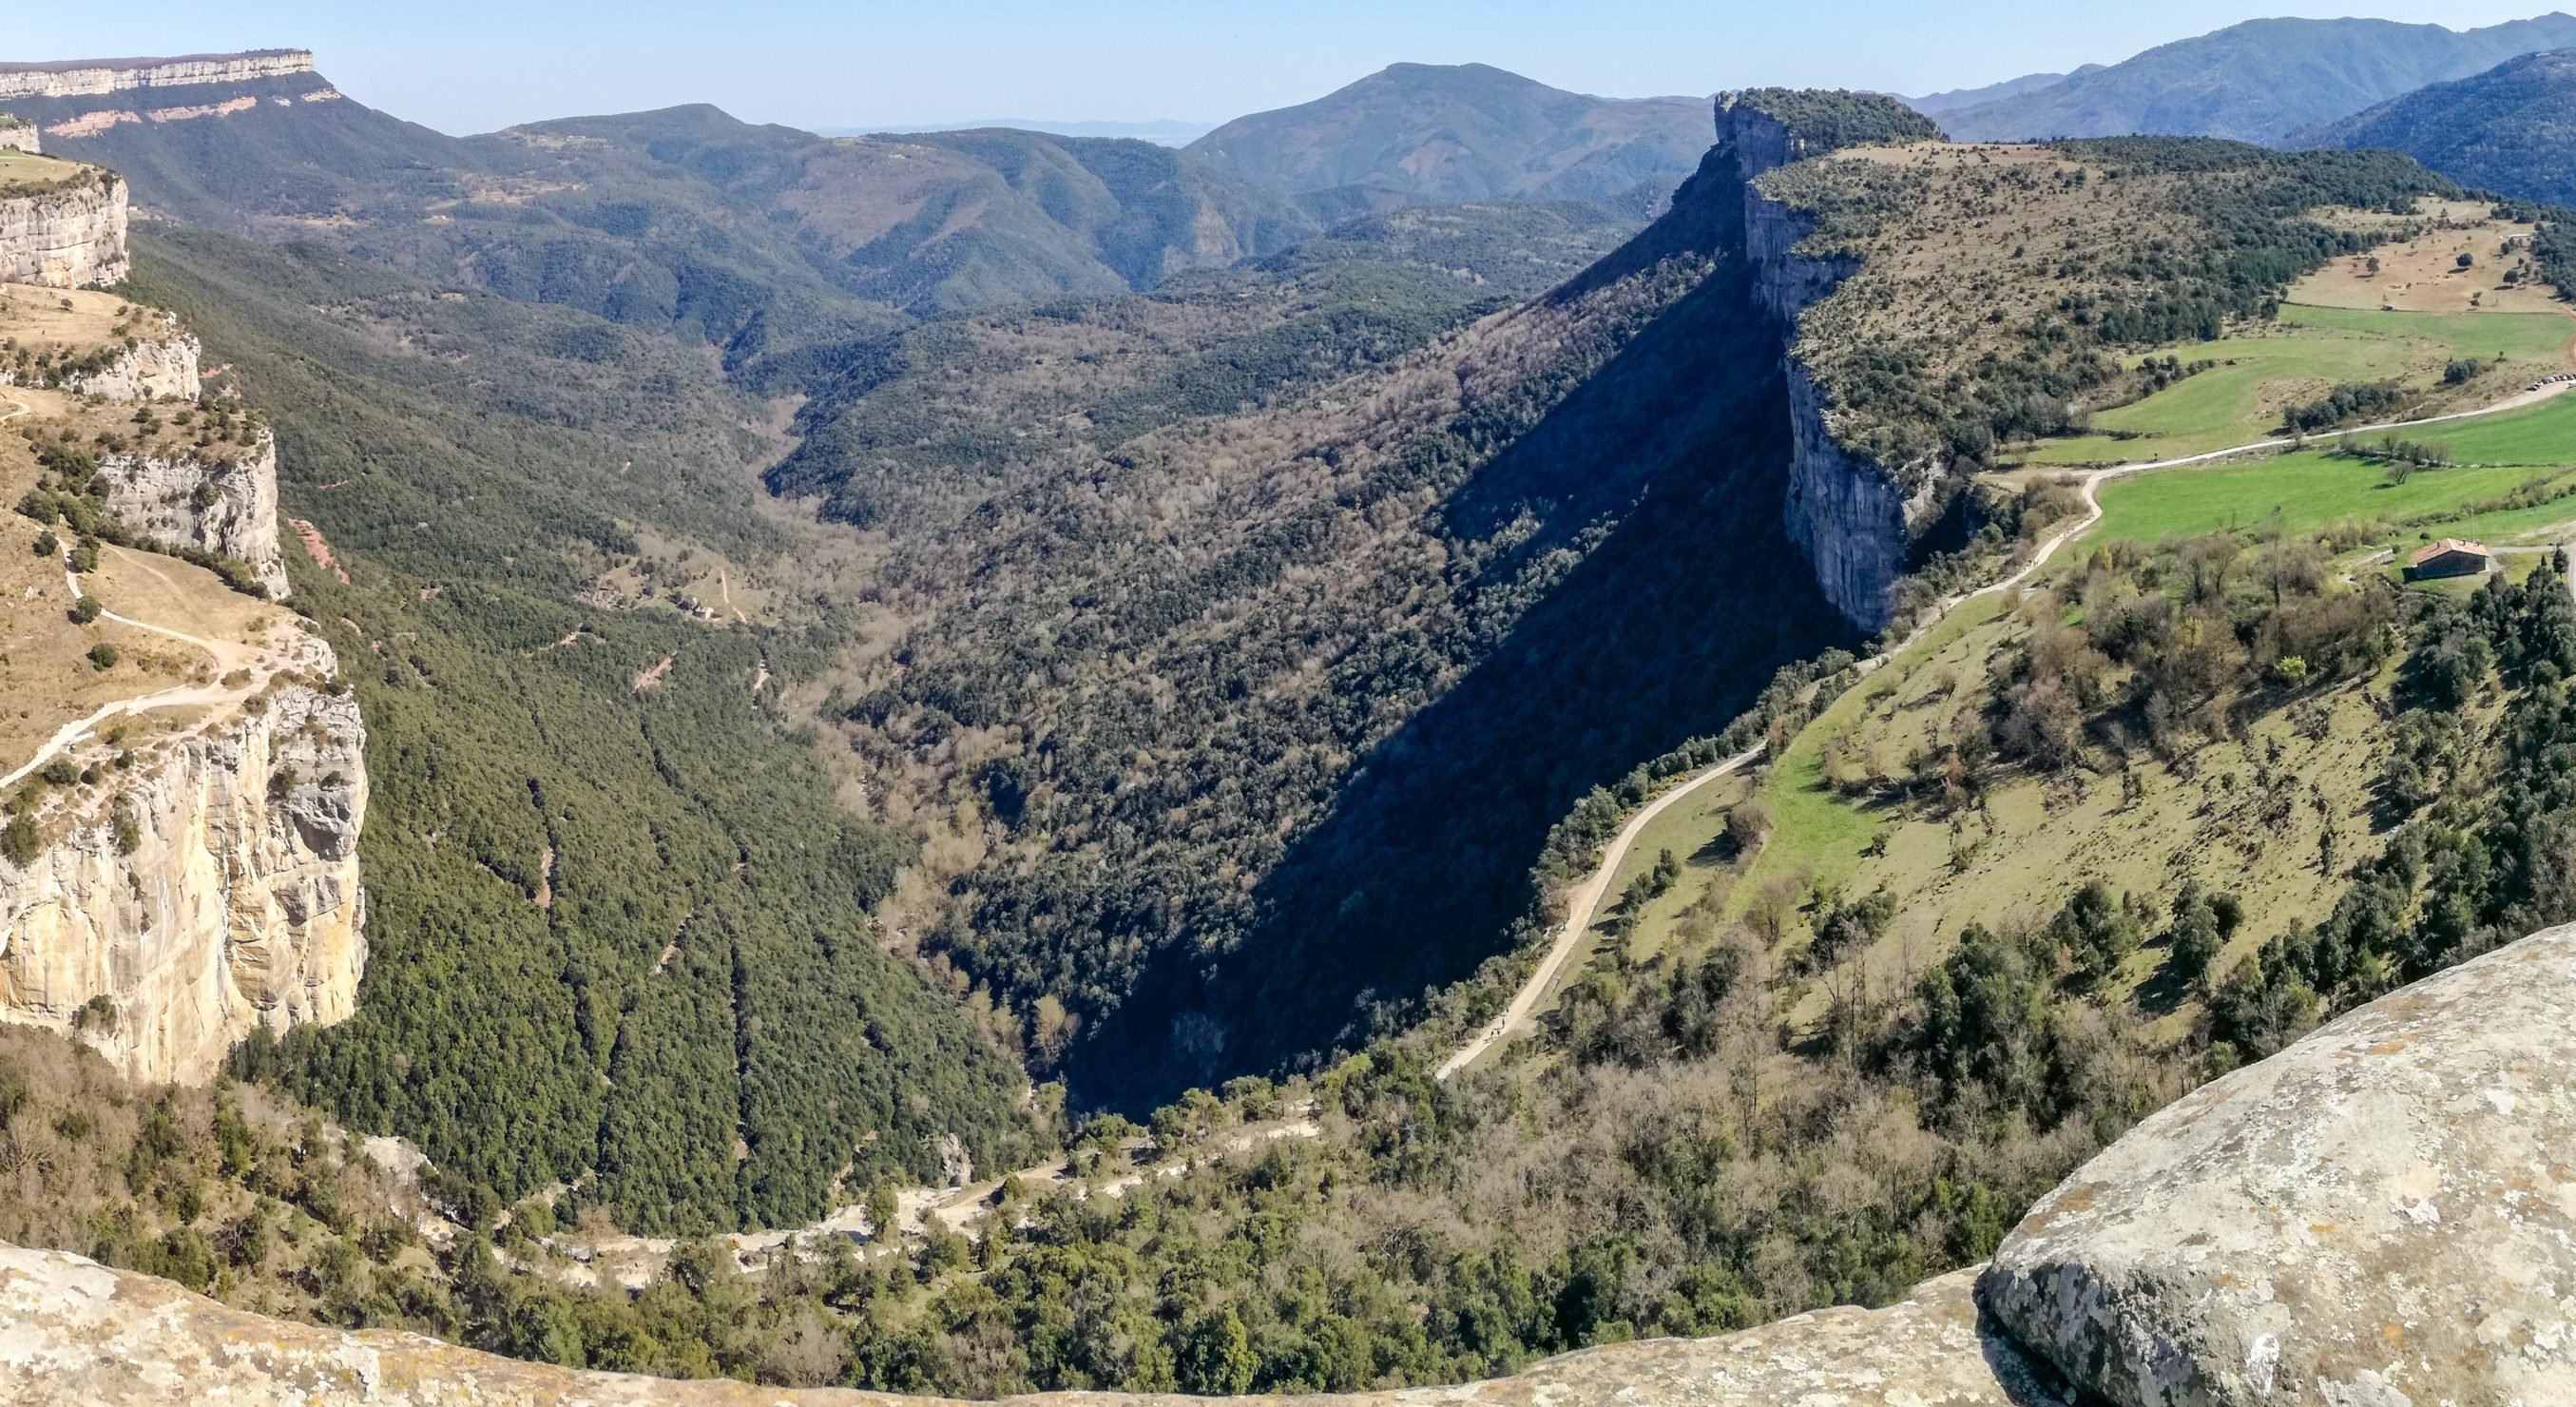 Mirador dels Bassis (Viewing point) along the Medieval Rupit Pyrenees Foothills Hike trail